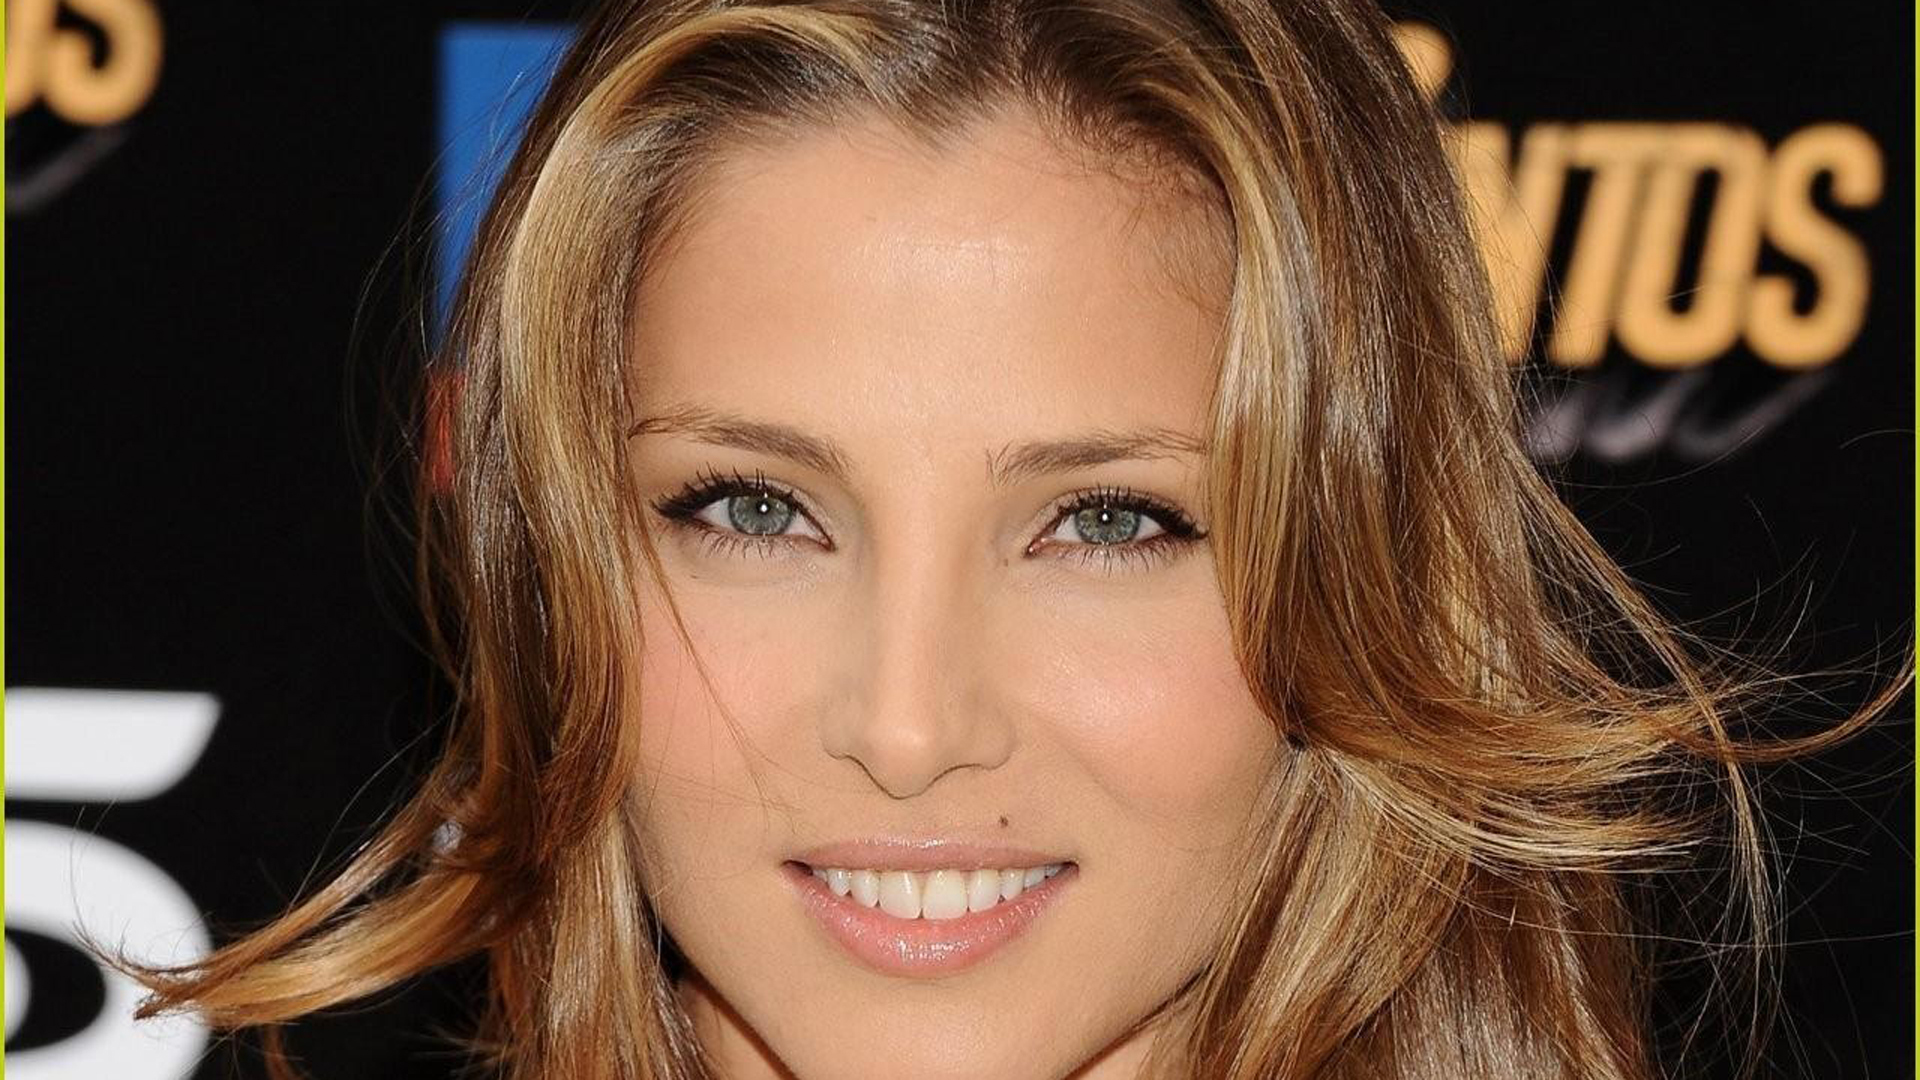 Elsa Pataky Wallpapers Images Photos Pictures Backgrounds HD Wallpapers Download Free Images Wallpaper [1000image.com]